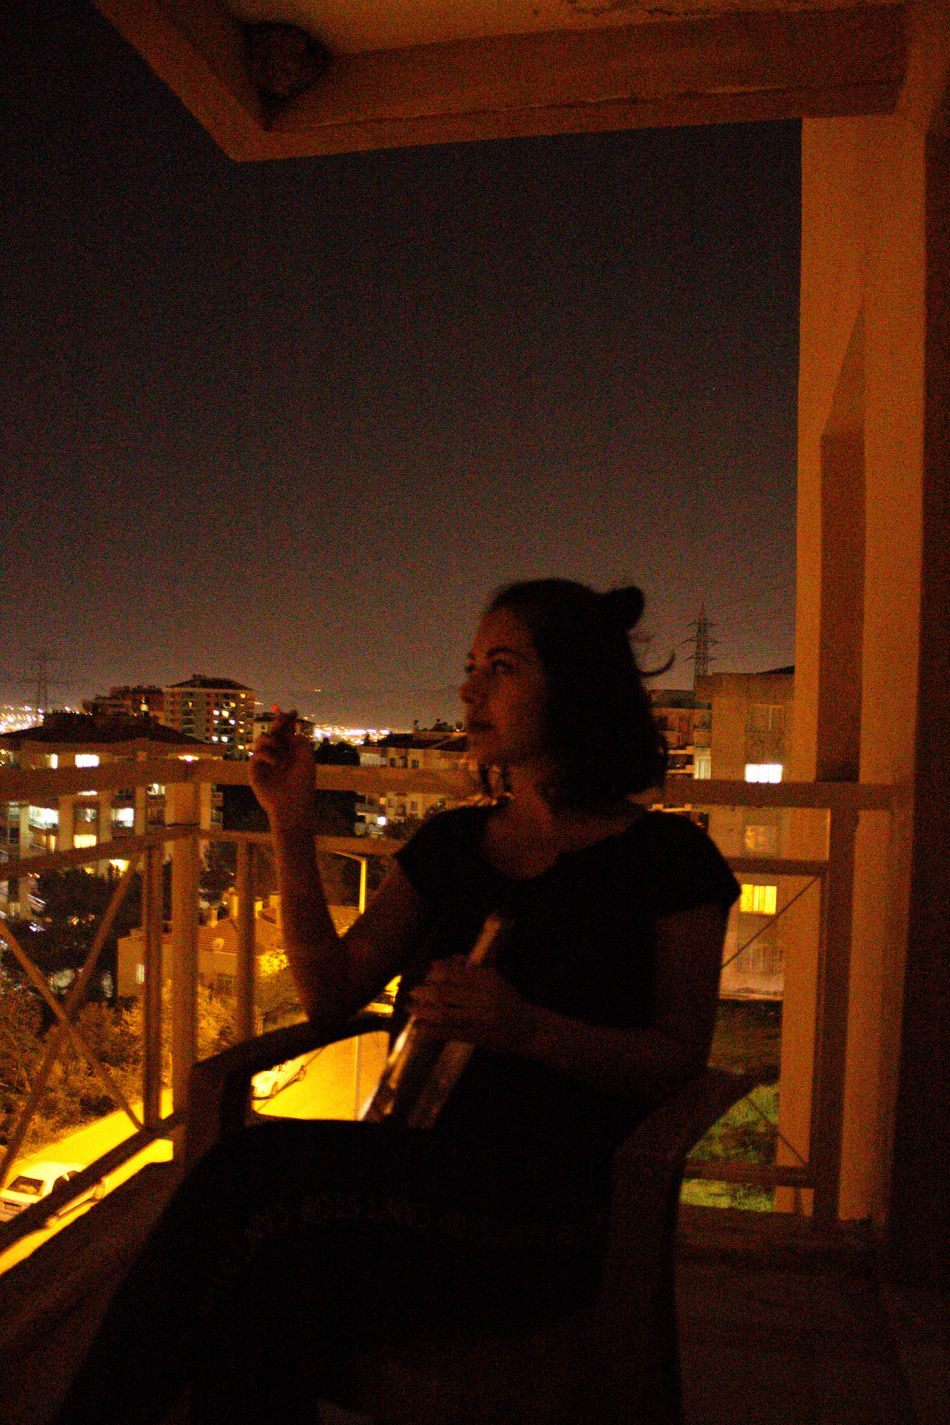 Night One Person Real People Lifestyles People Sky Balcony With A View